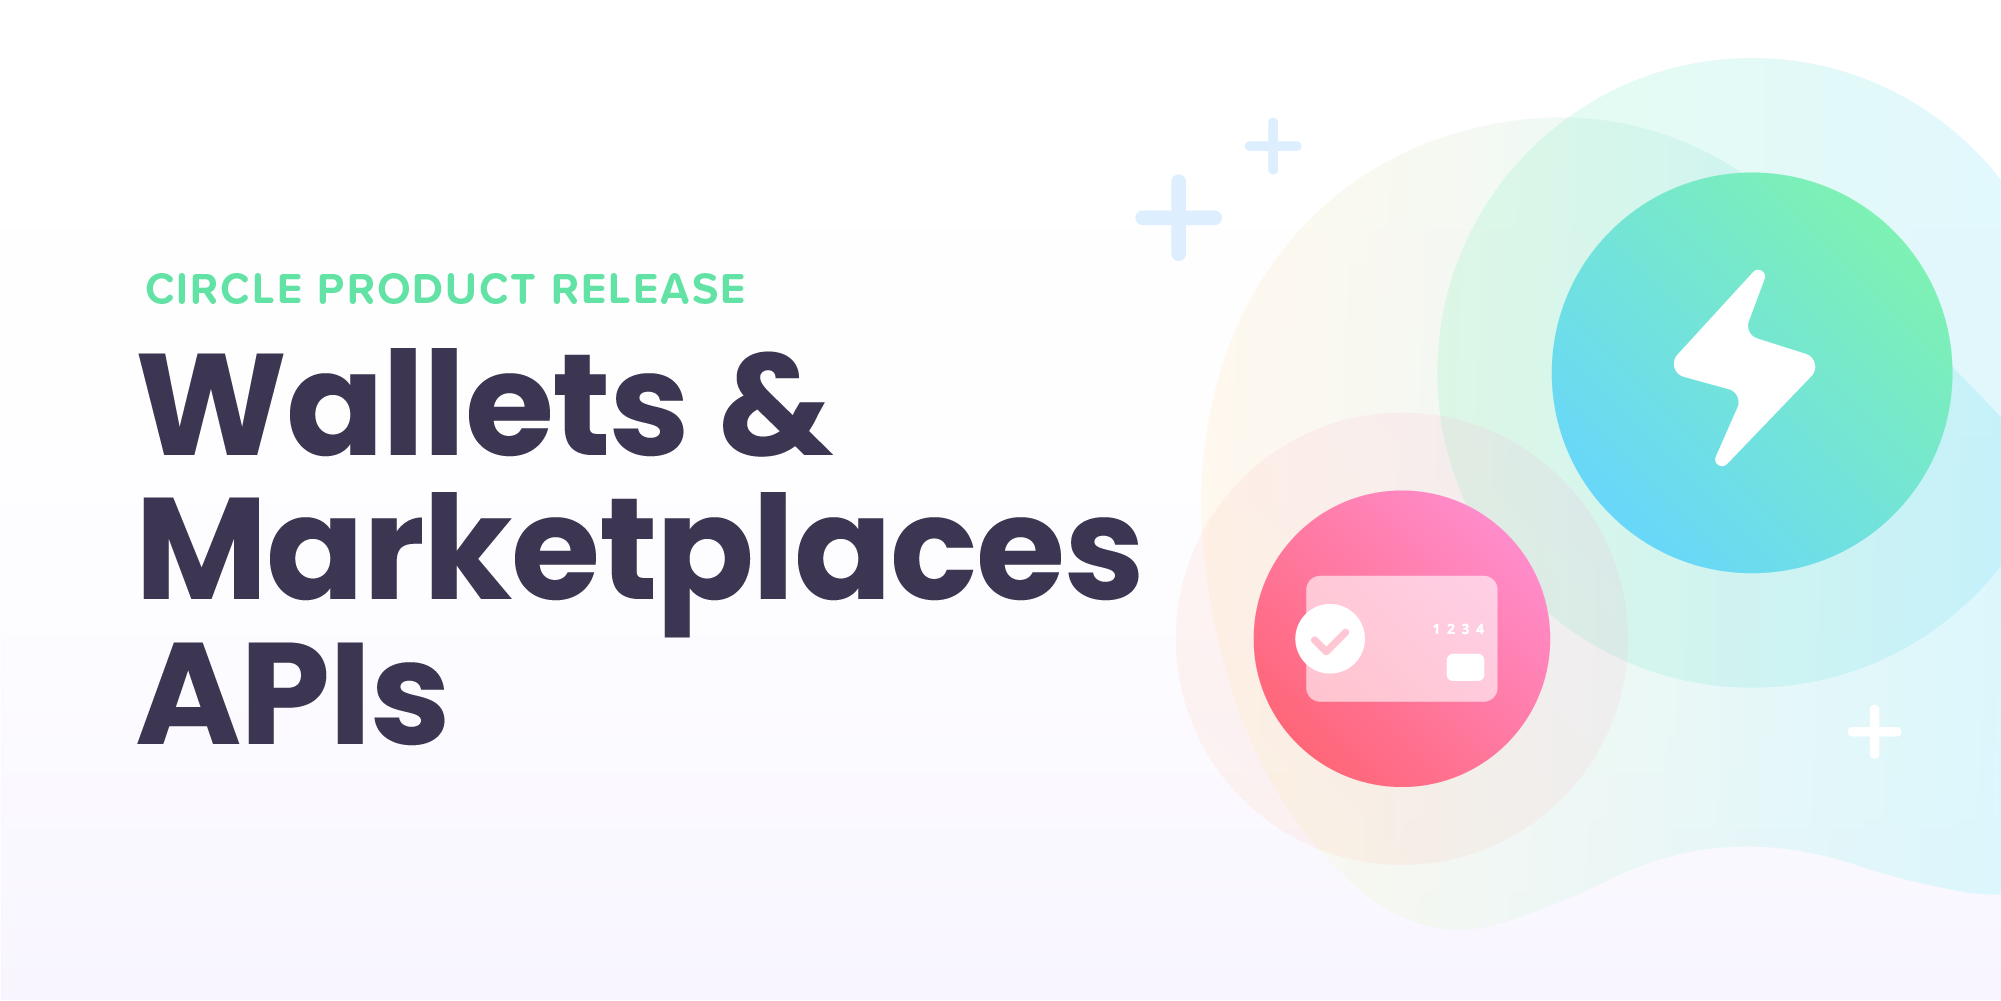 Internet Commerce Made Easy: Meet Our New Wallets & Marketplaces APIs